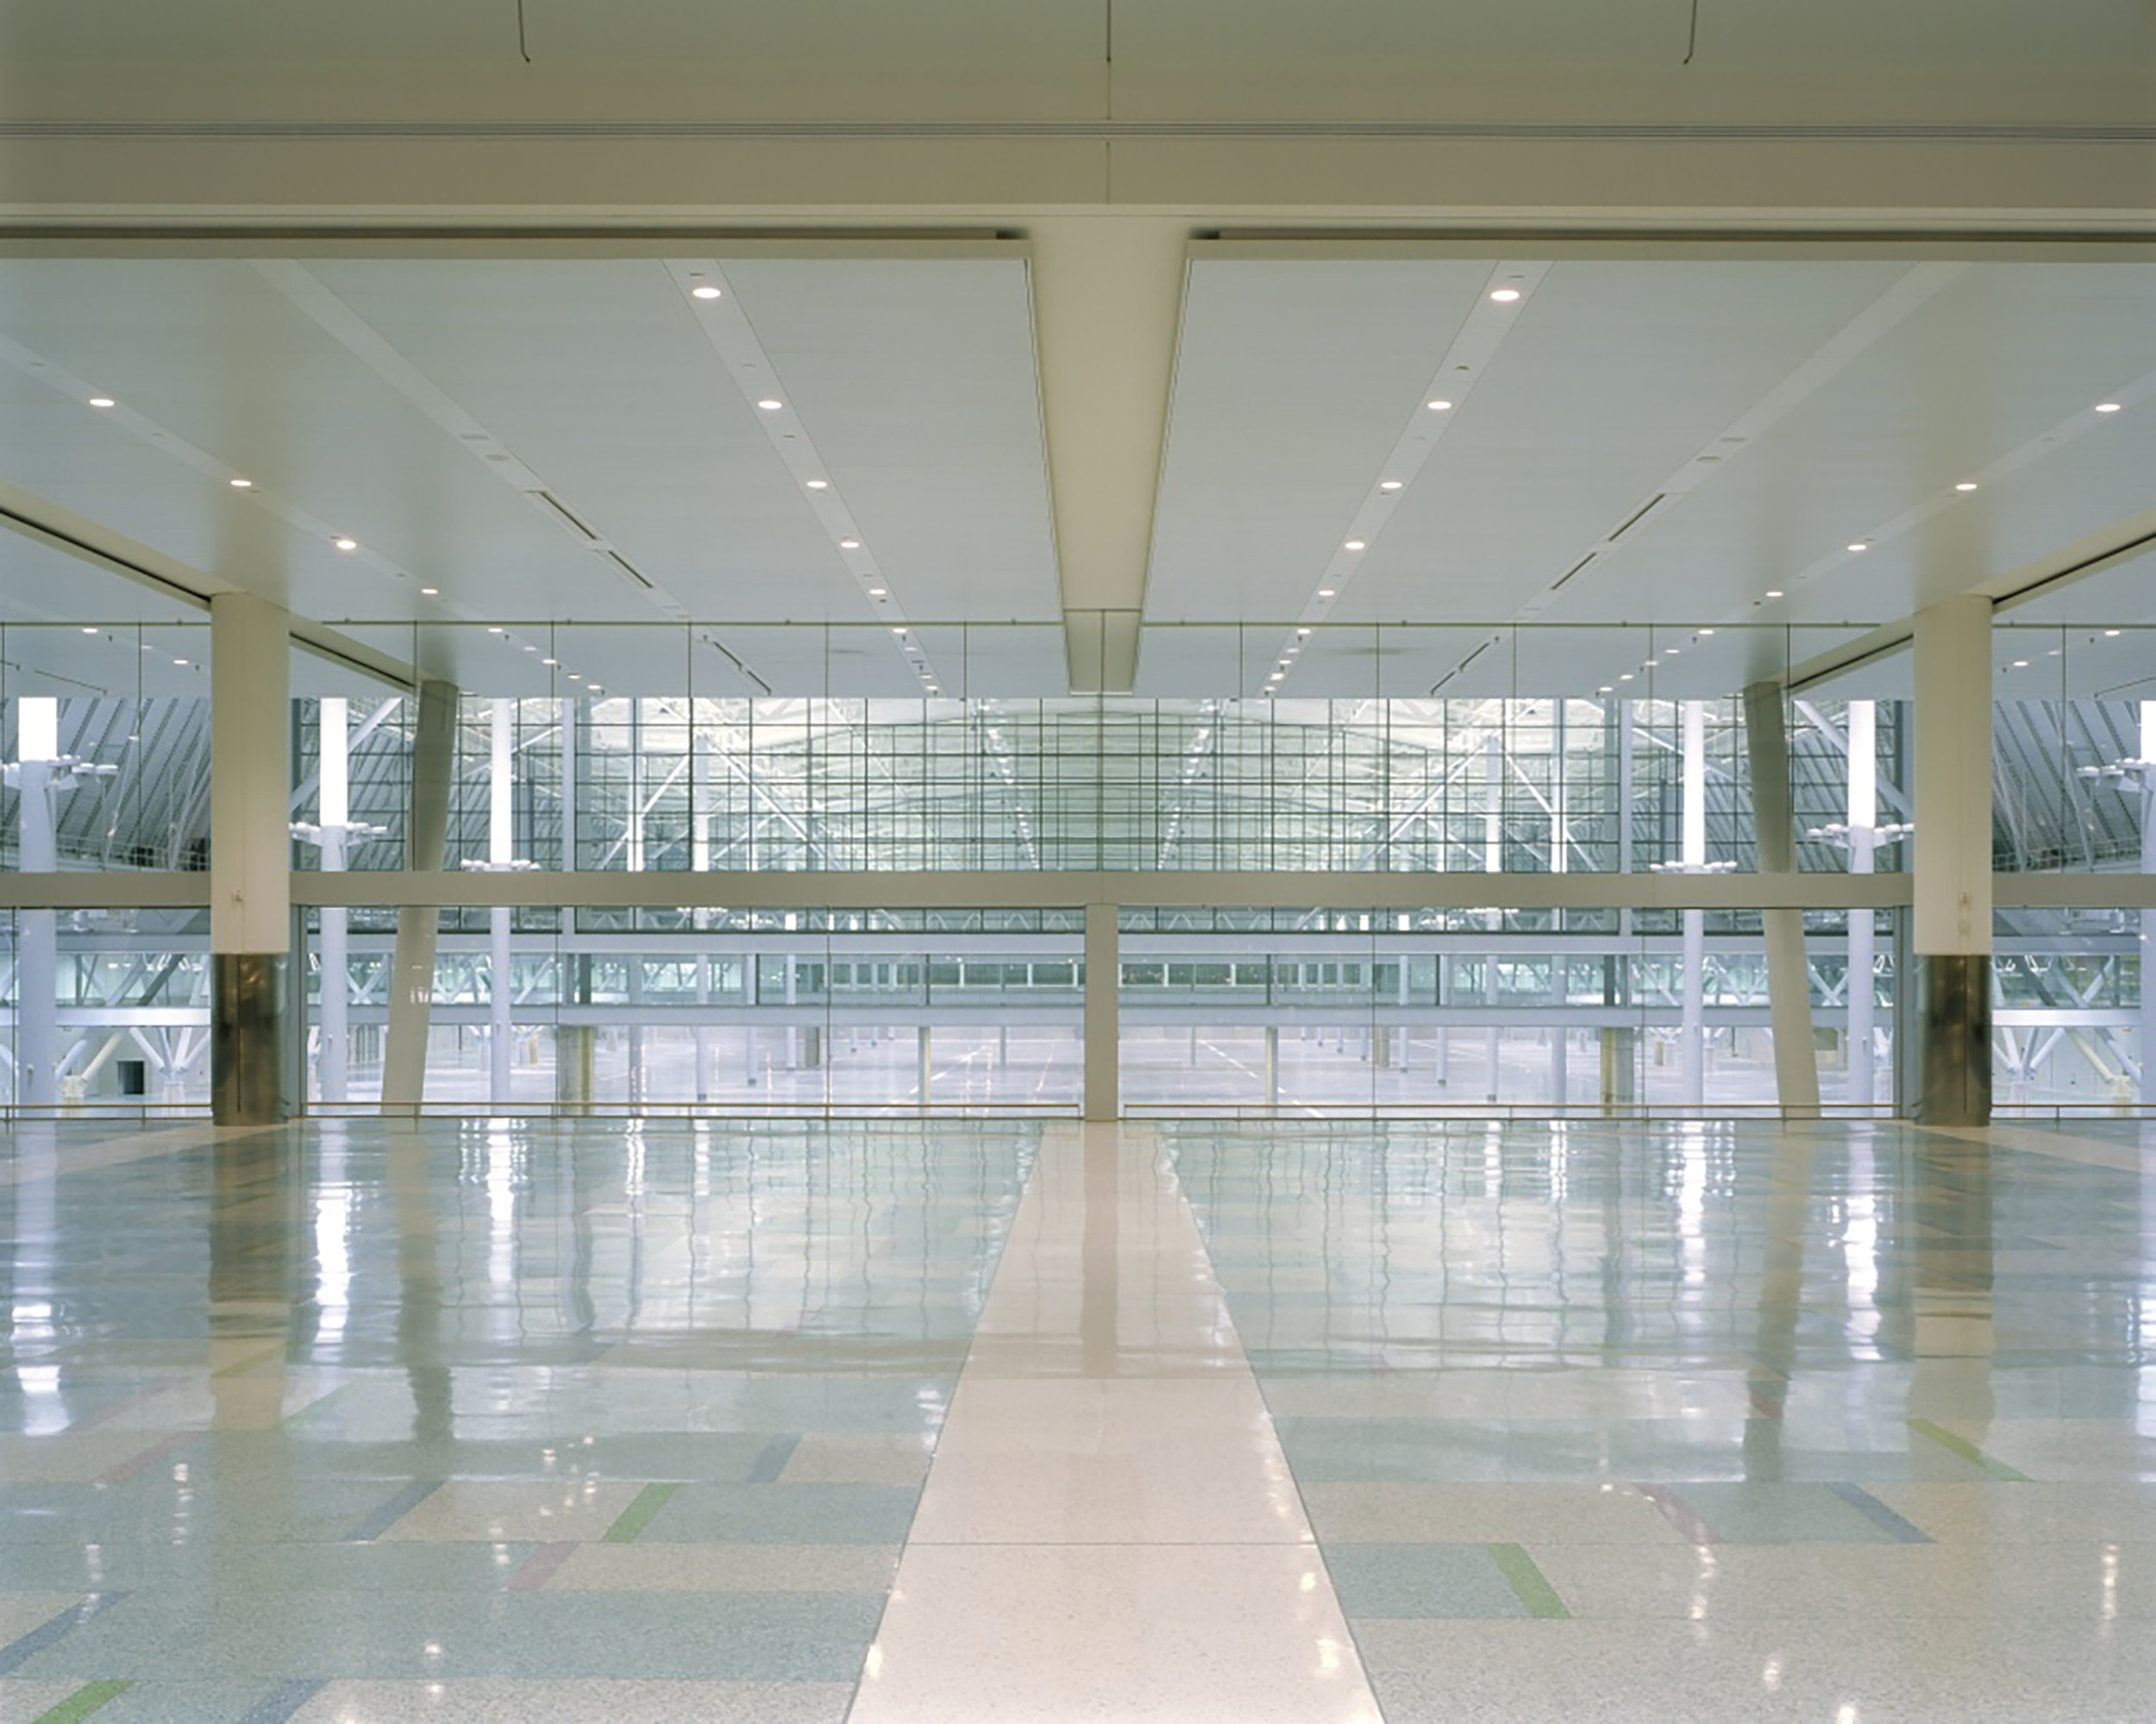 The Boston Convention & Exhibition Center designed with Rafael Viñoly